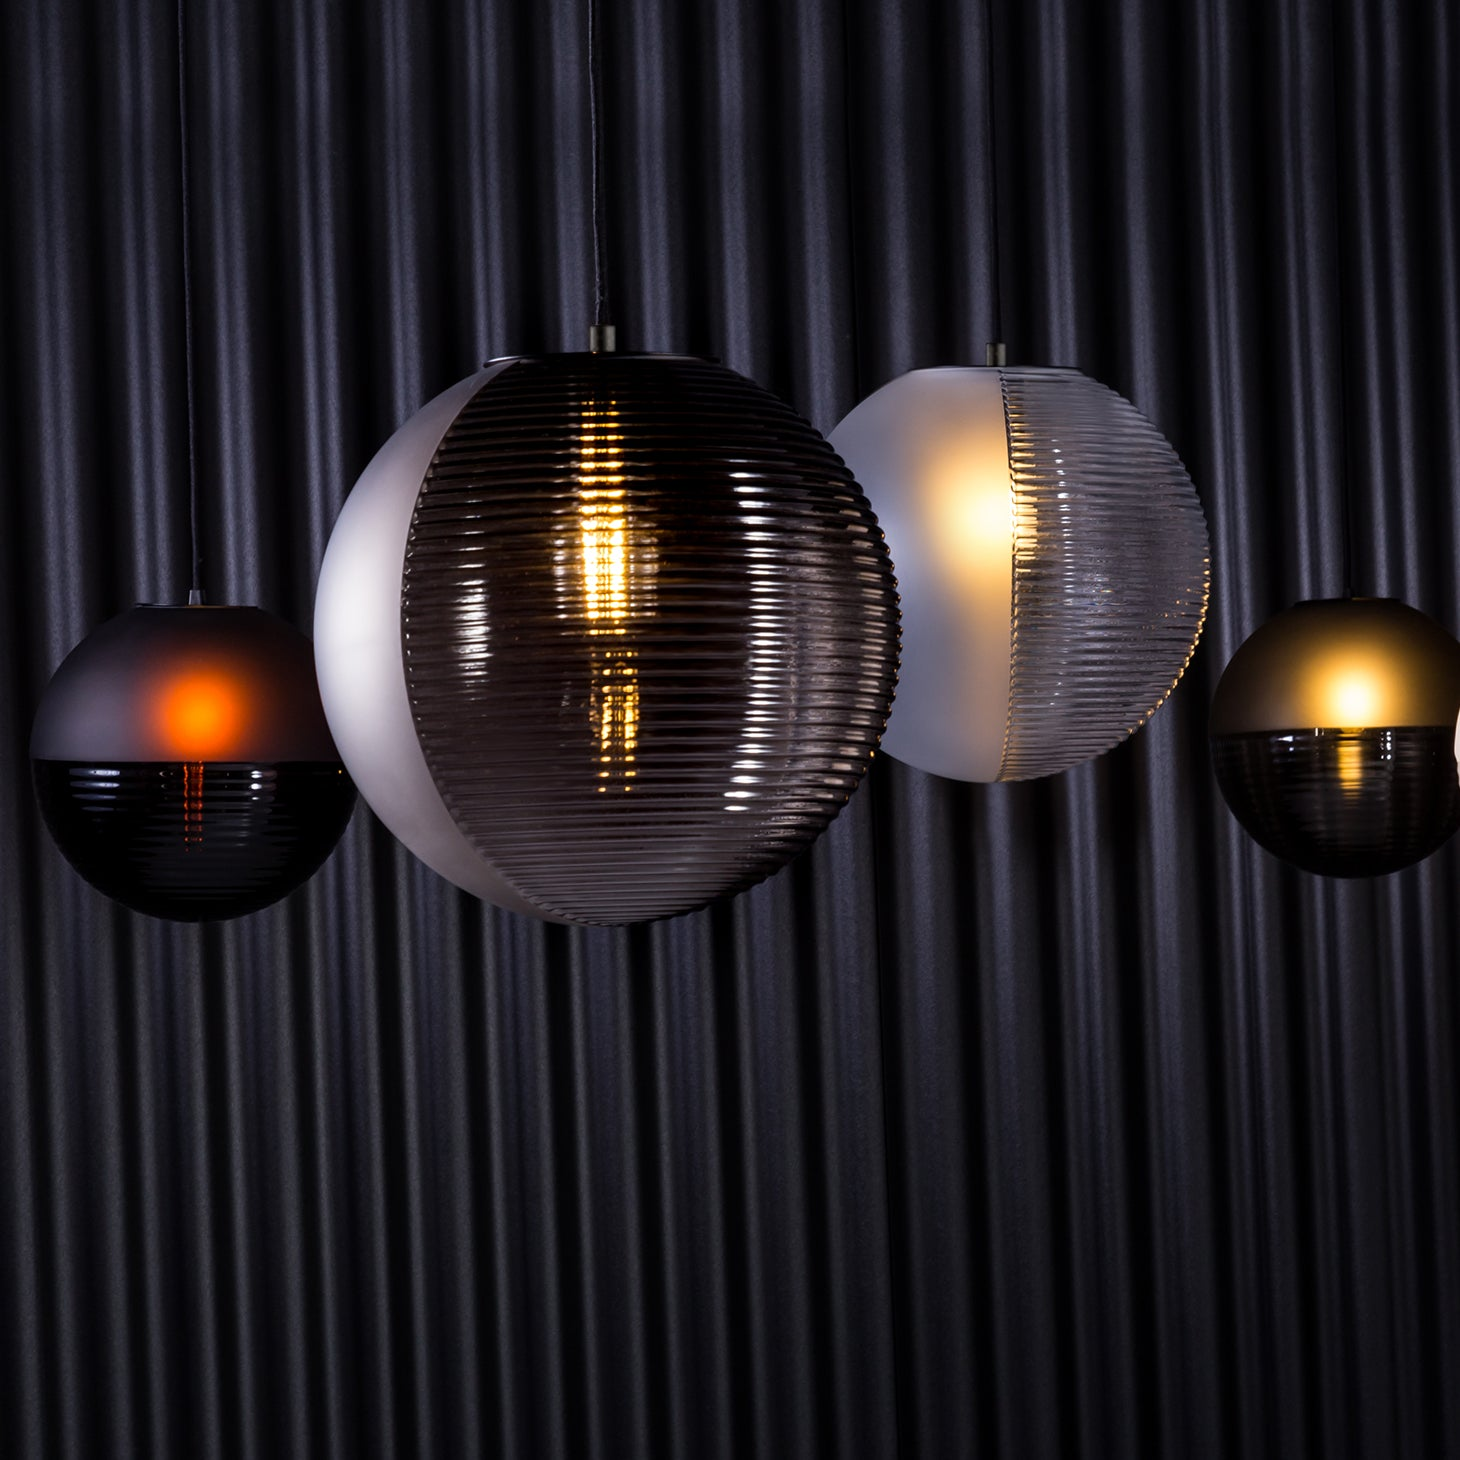 Stellar Medium Lighting Sebastian Herkner Designer Furniture Sku: 747-160-10045